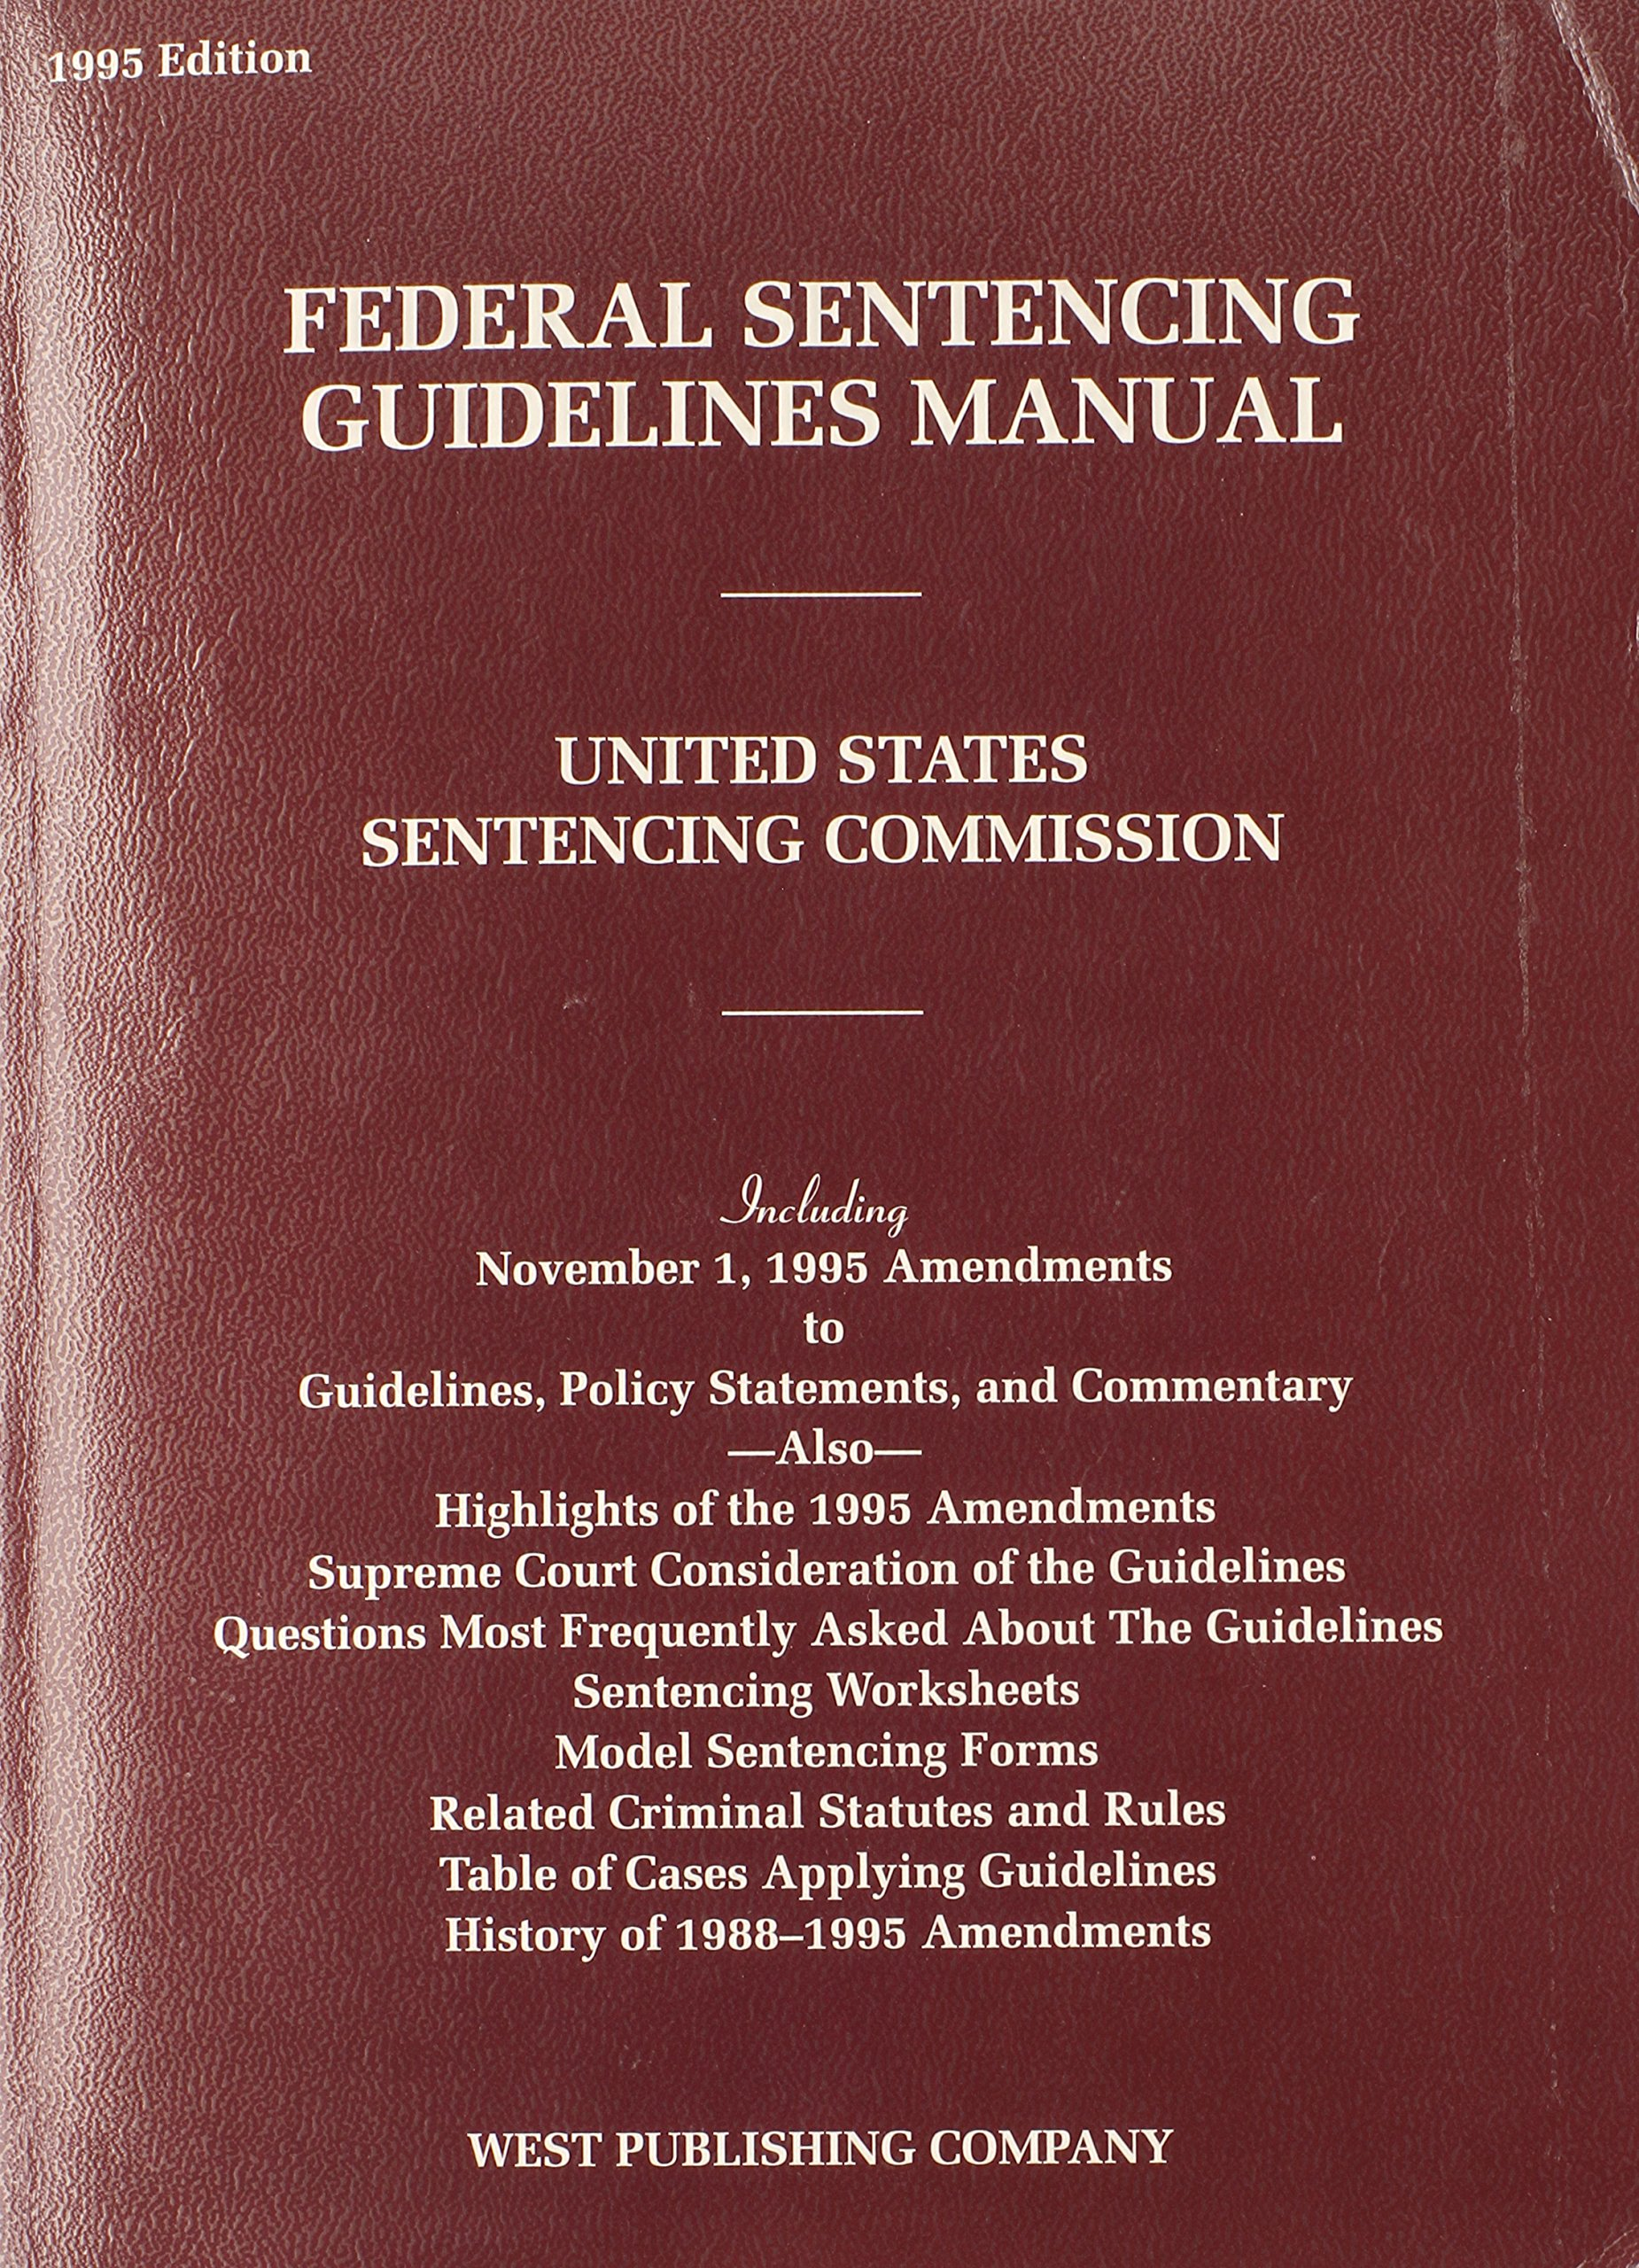 Worksheets Federal Sentencing Guidelines Worksheet federal sentencing guidelines manual united states commission1995 9780314089816 amazon com books